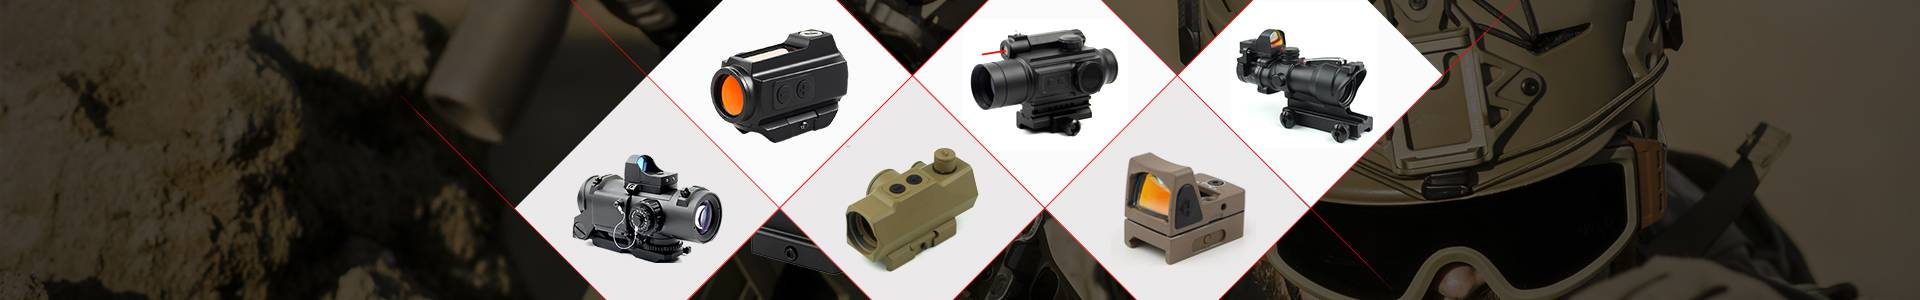 Long Xiang Optics-High Quality Holographic Red Dot Sight 2 Moa Red Dot Sight